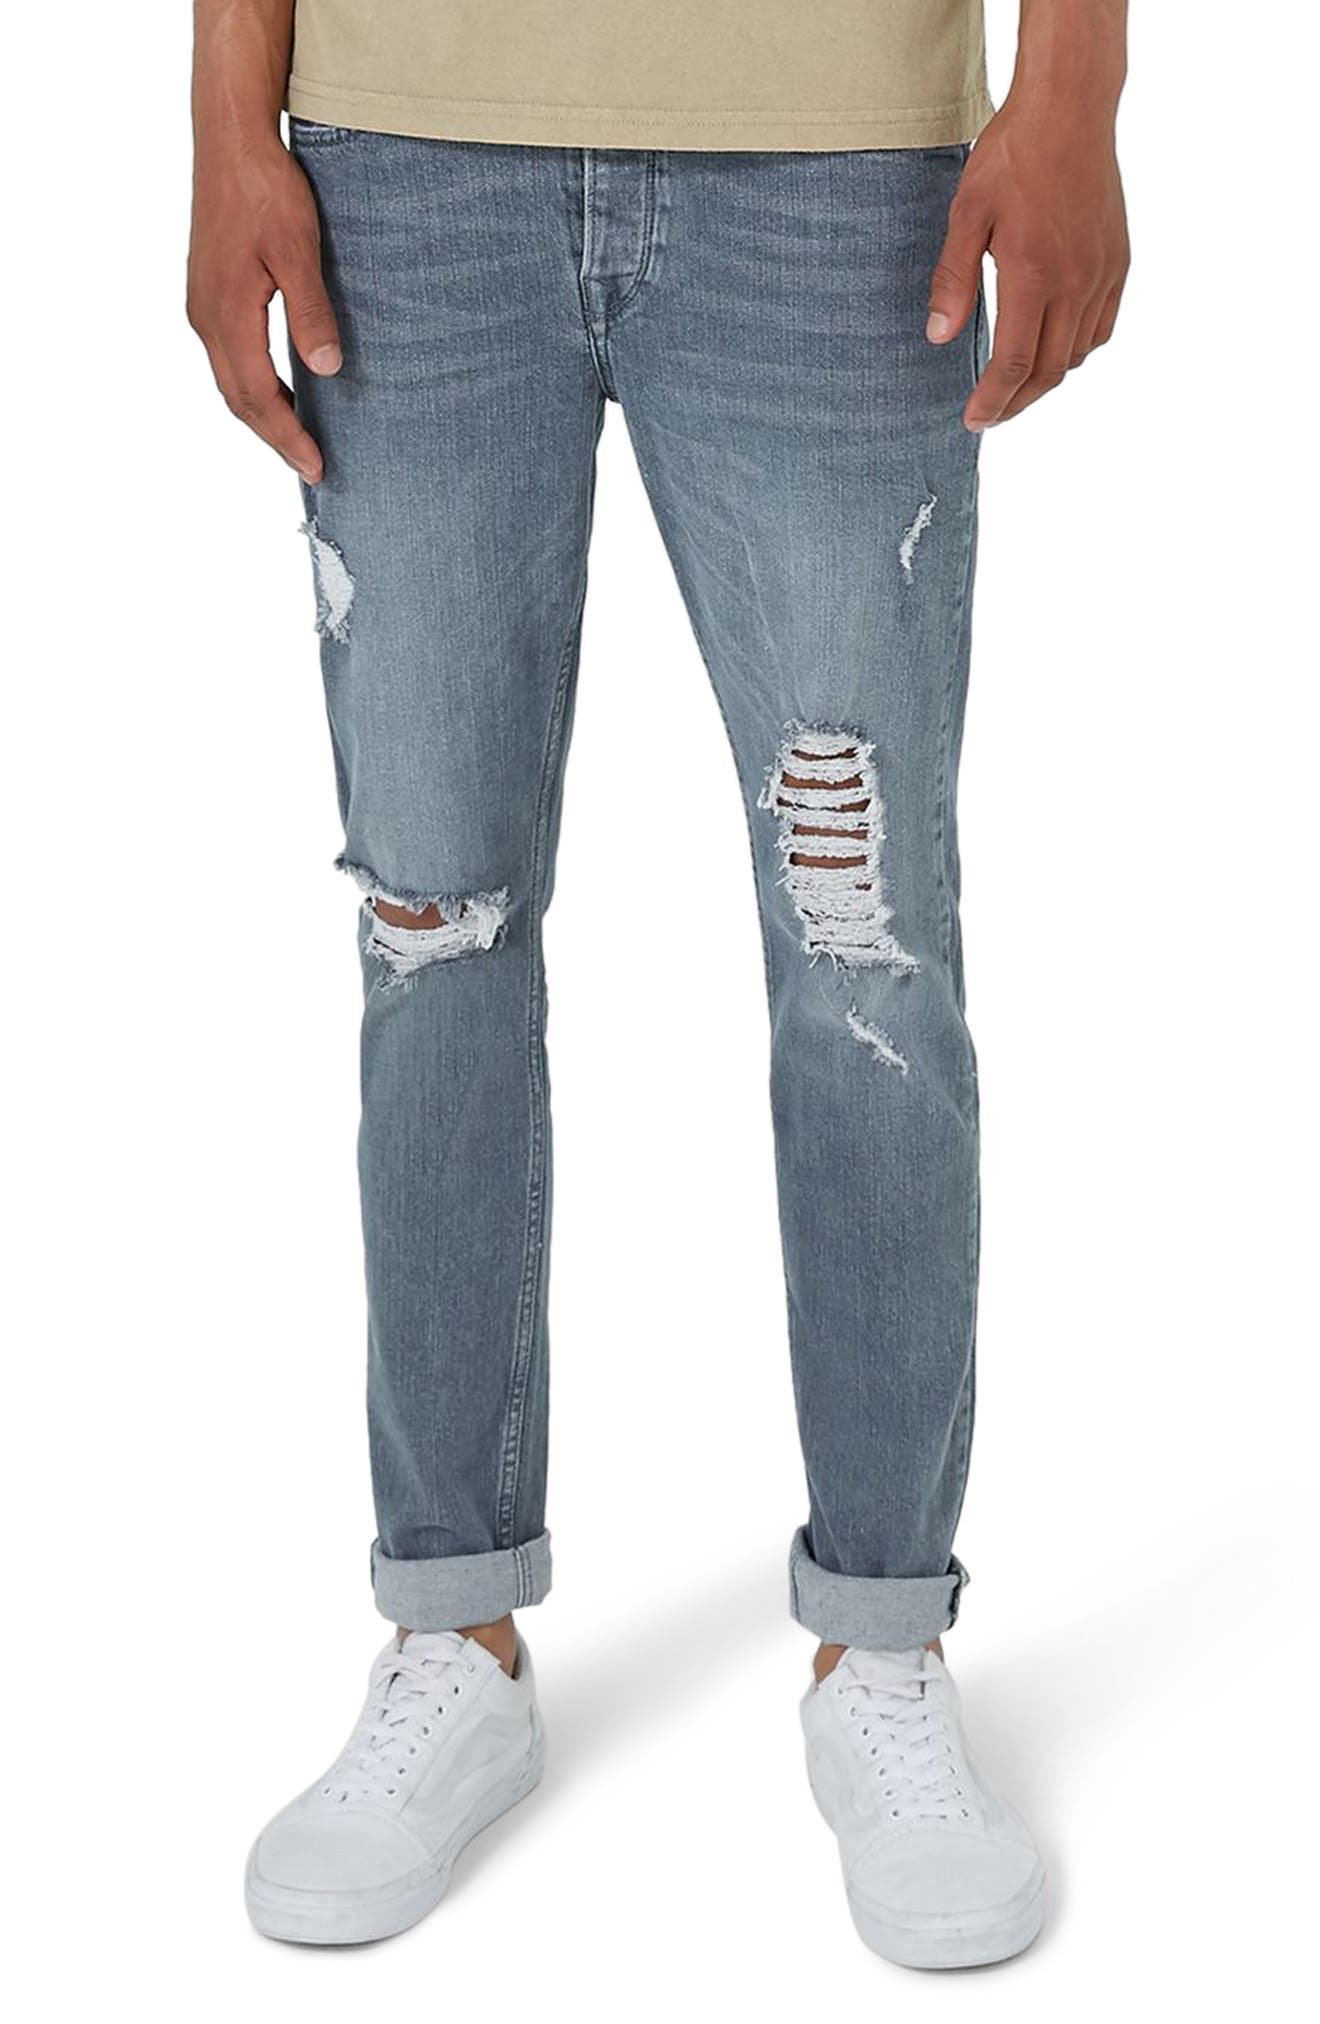 Extreme Rip Stretch Jeans,                             Main thumbnail 1, color,